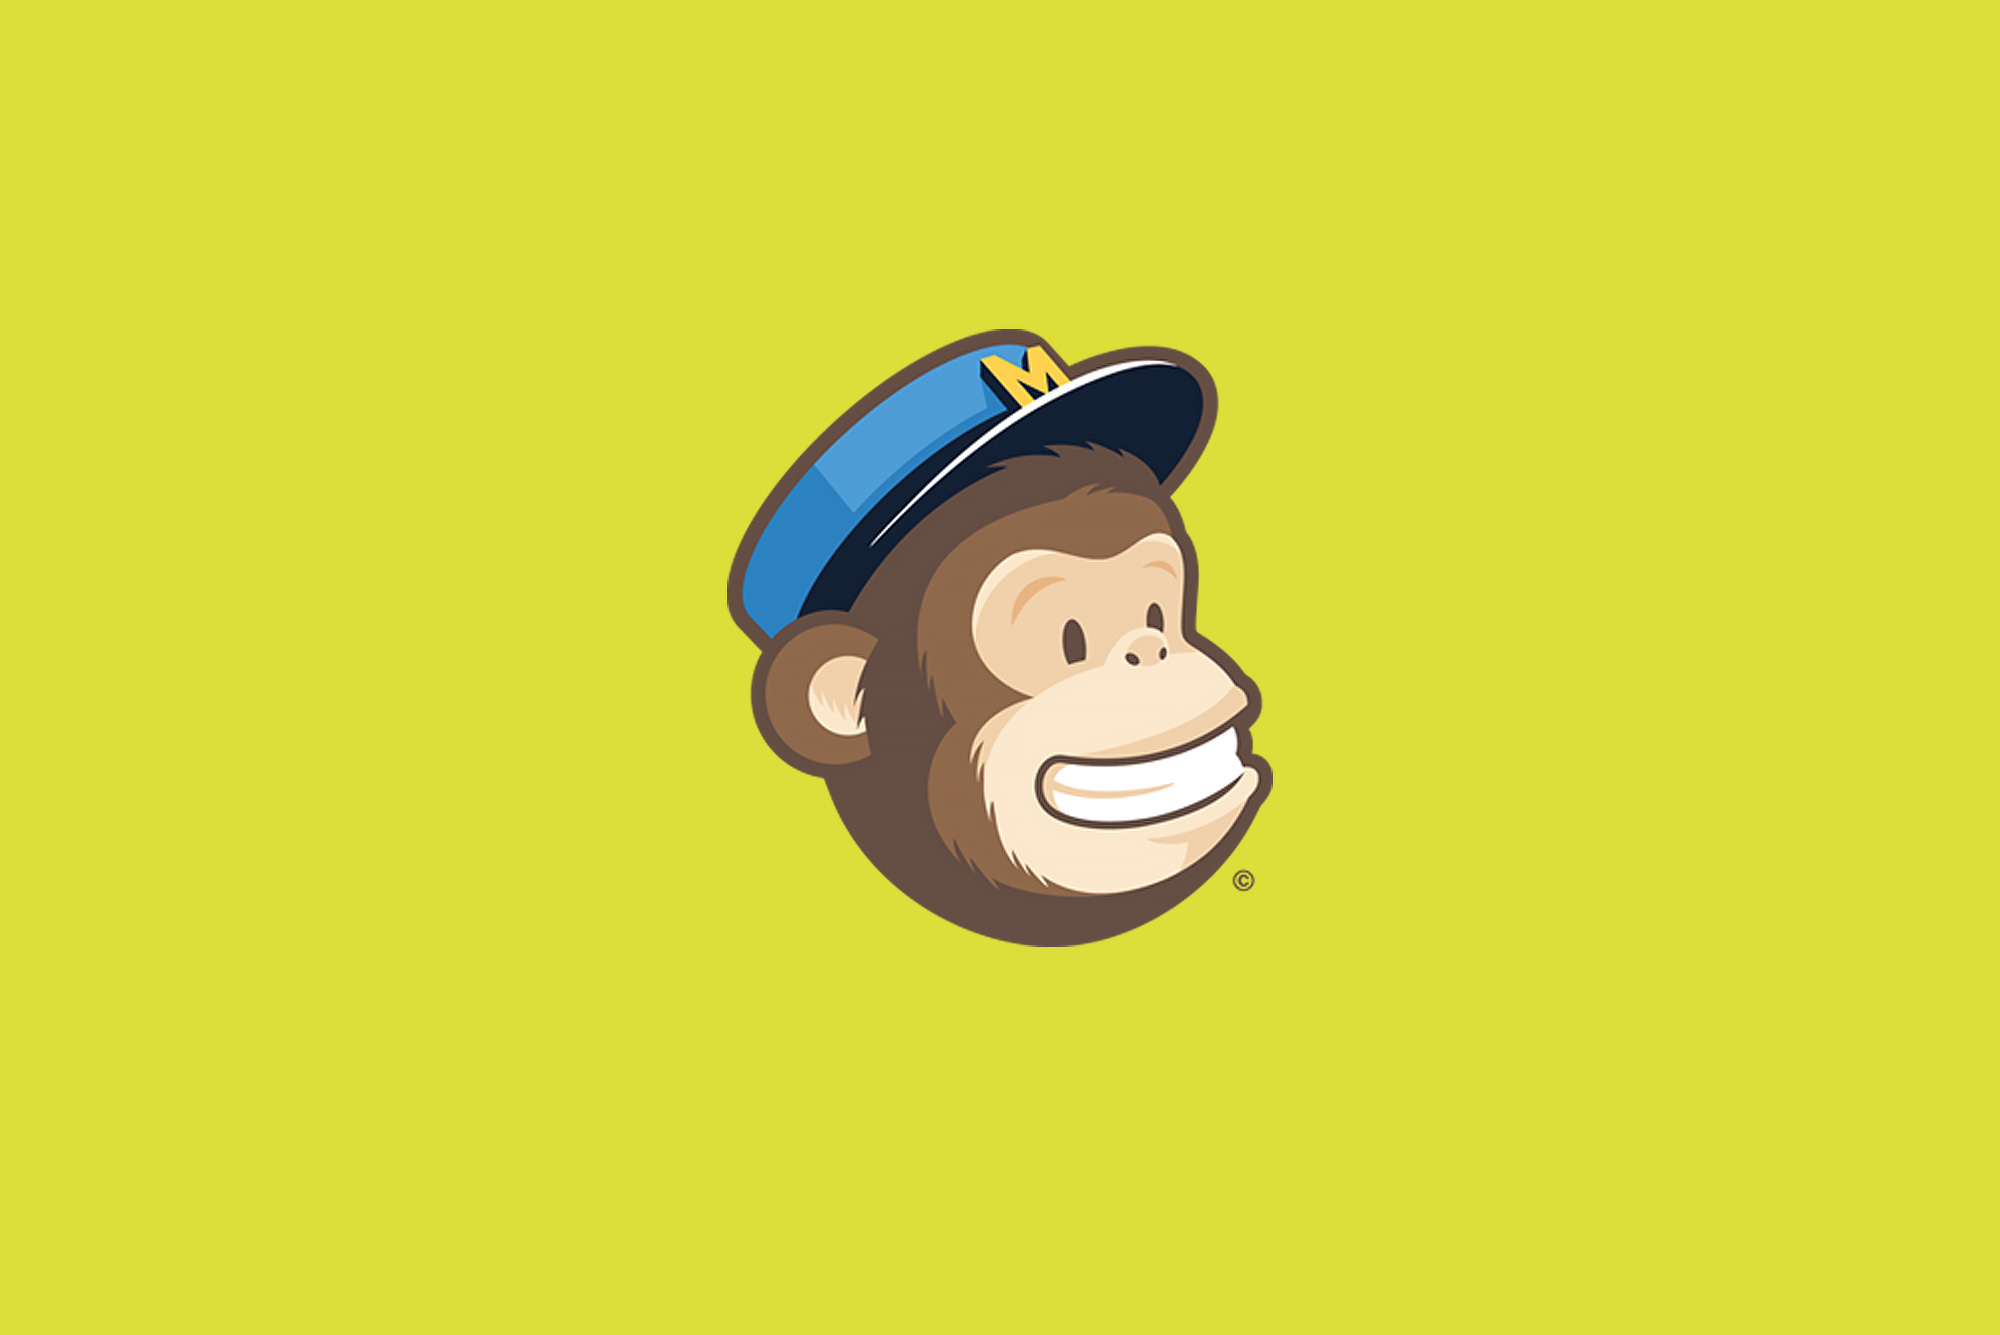 Mail Chimp logo on yellow background - Benefits of Email Marketing